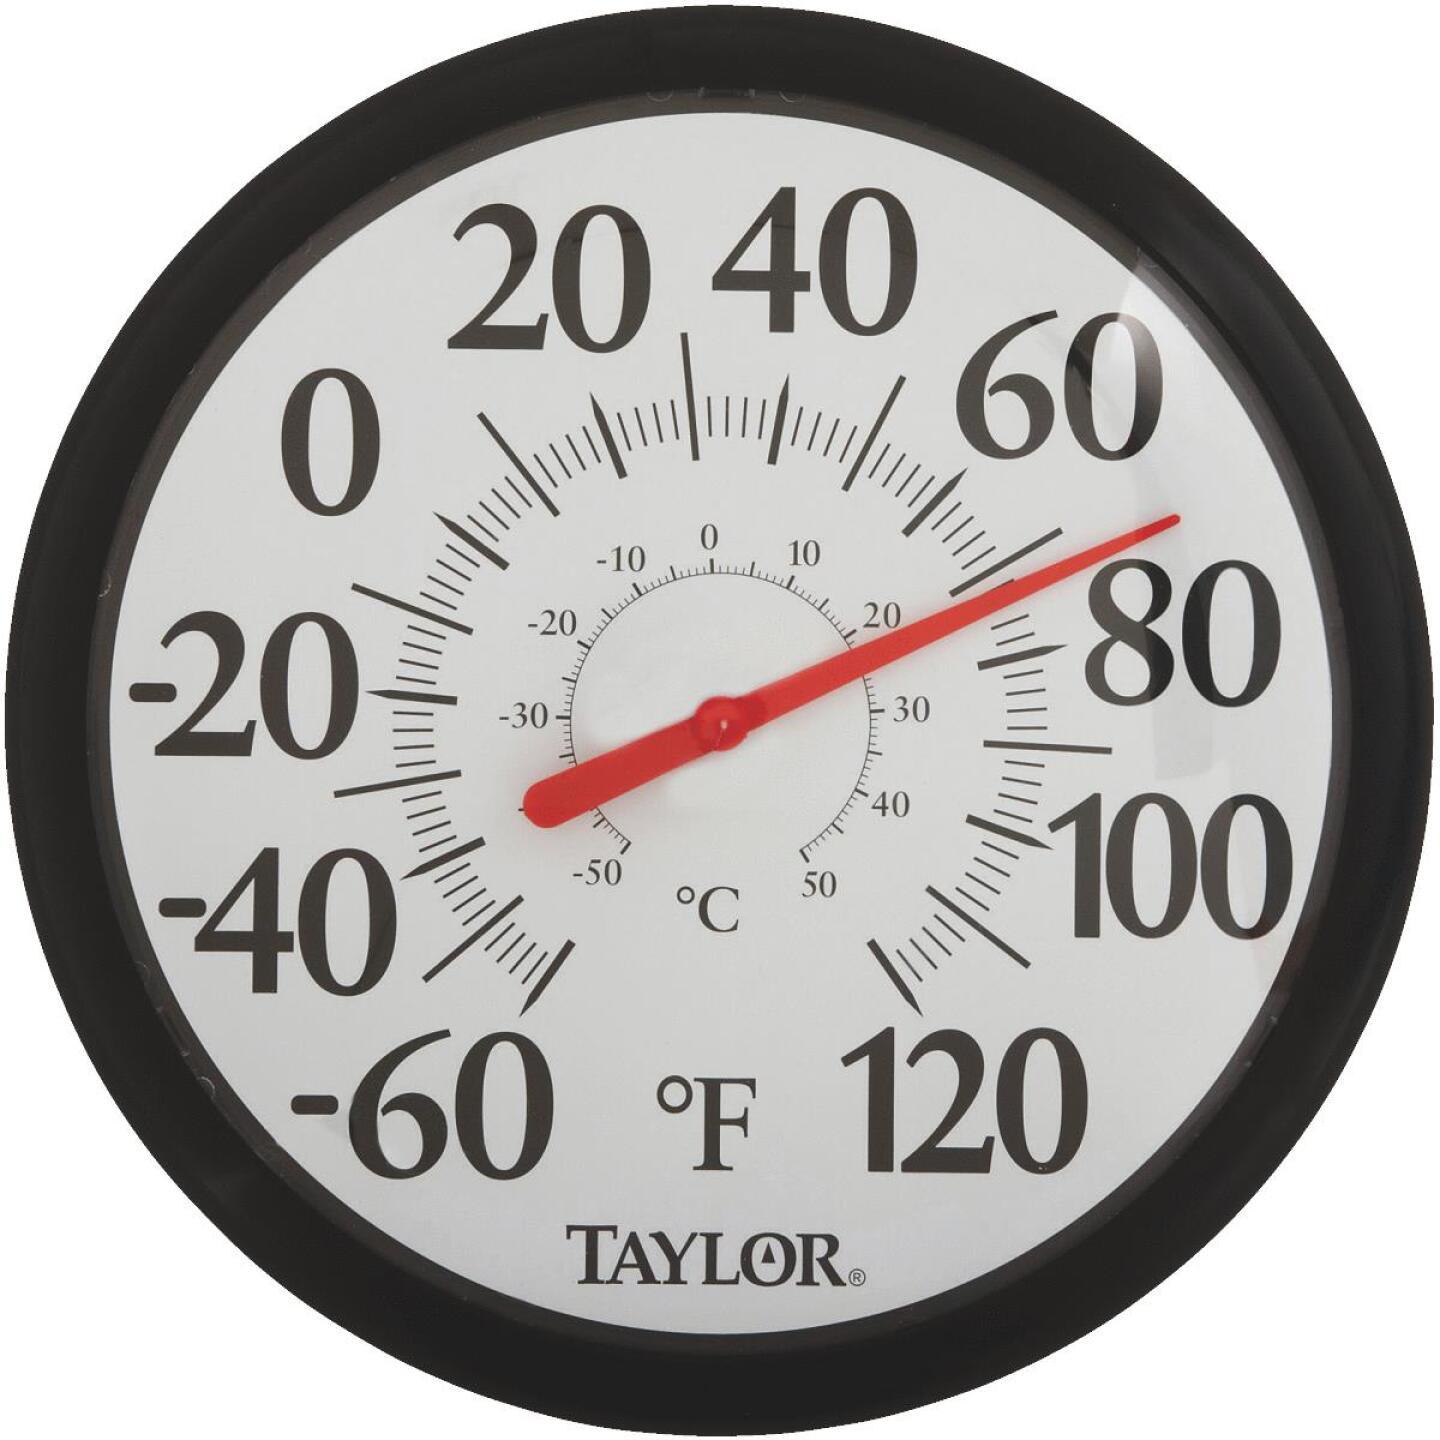 """Taylor 13-1/2"""" Fahrenheit and Celsius -60 To 120 F, -50 To 50 C Outdoor Wall Thermometer Image 1"""